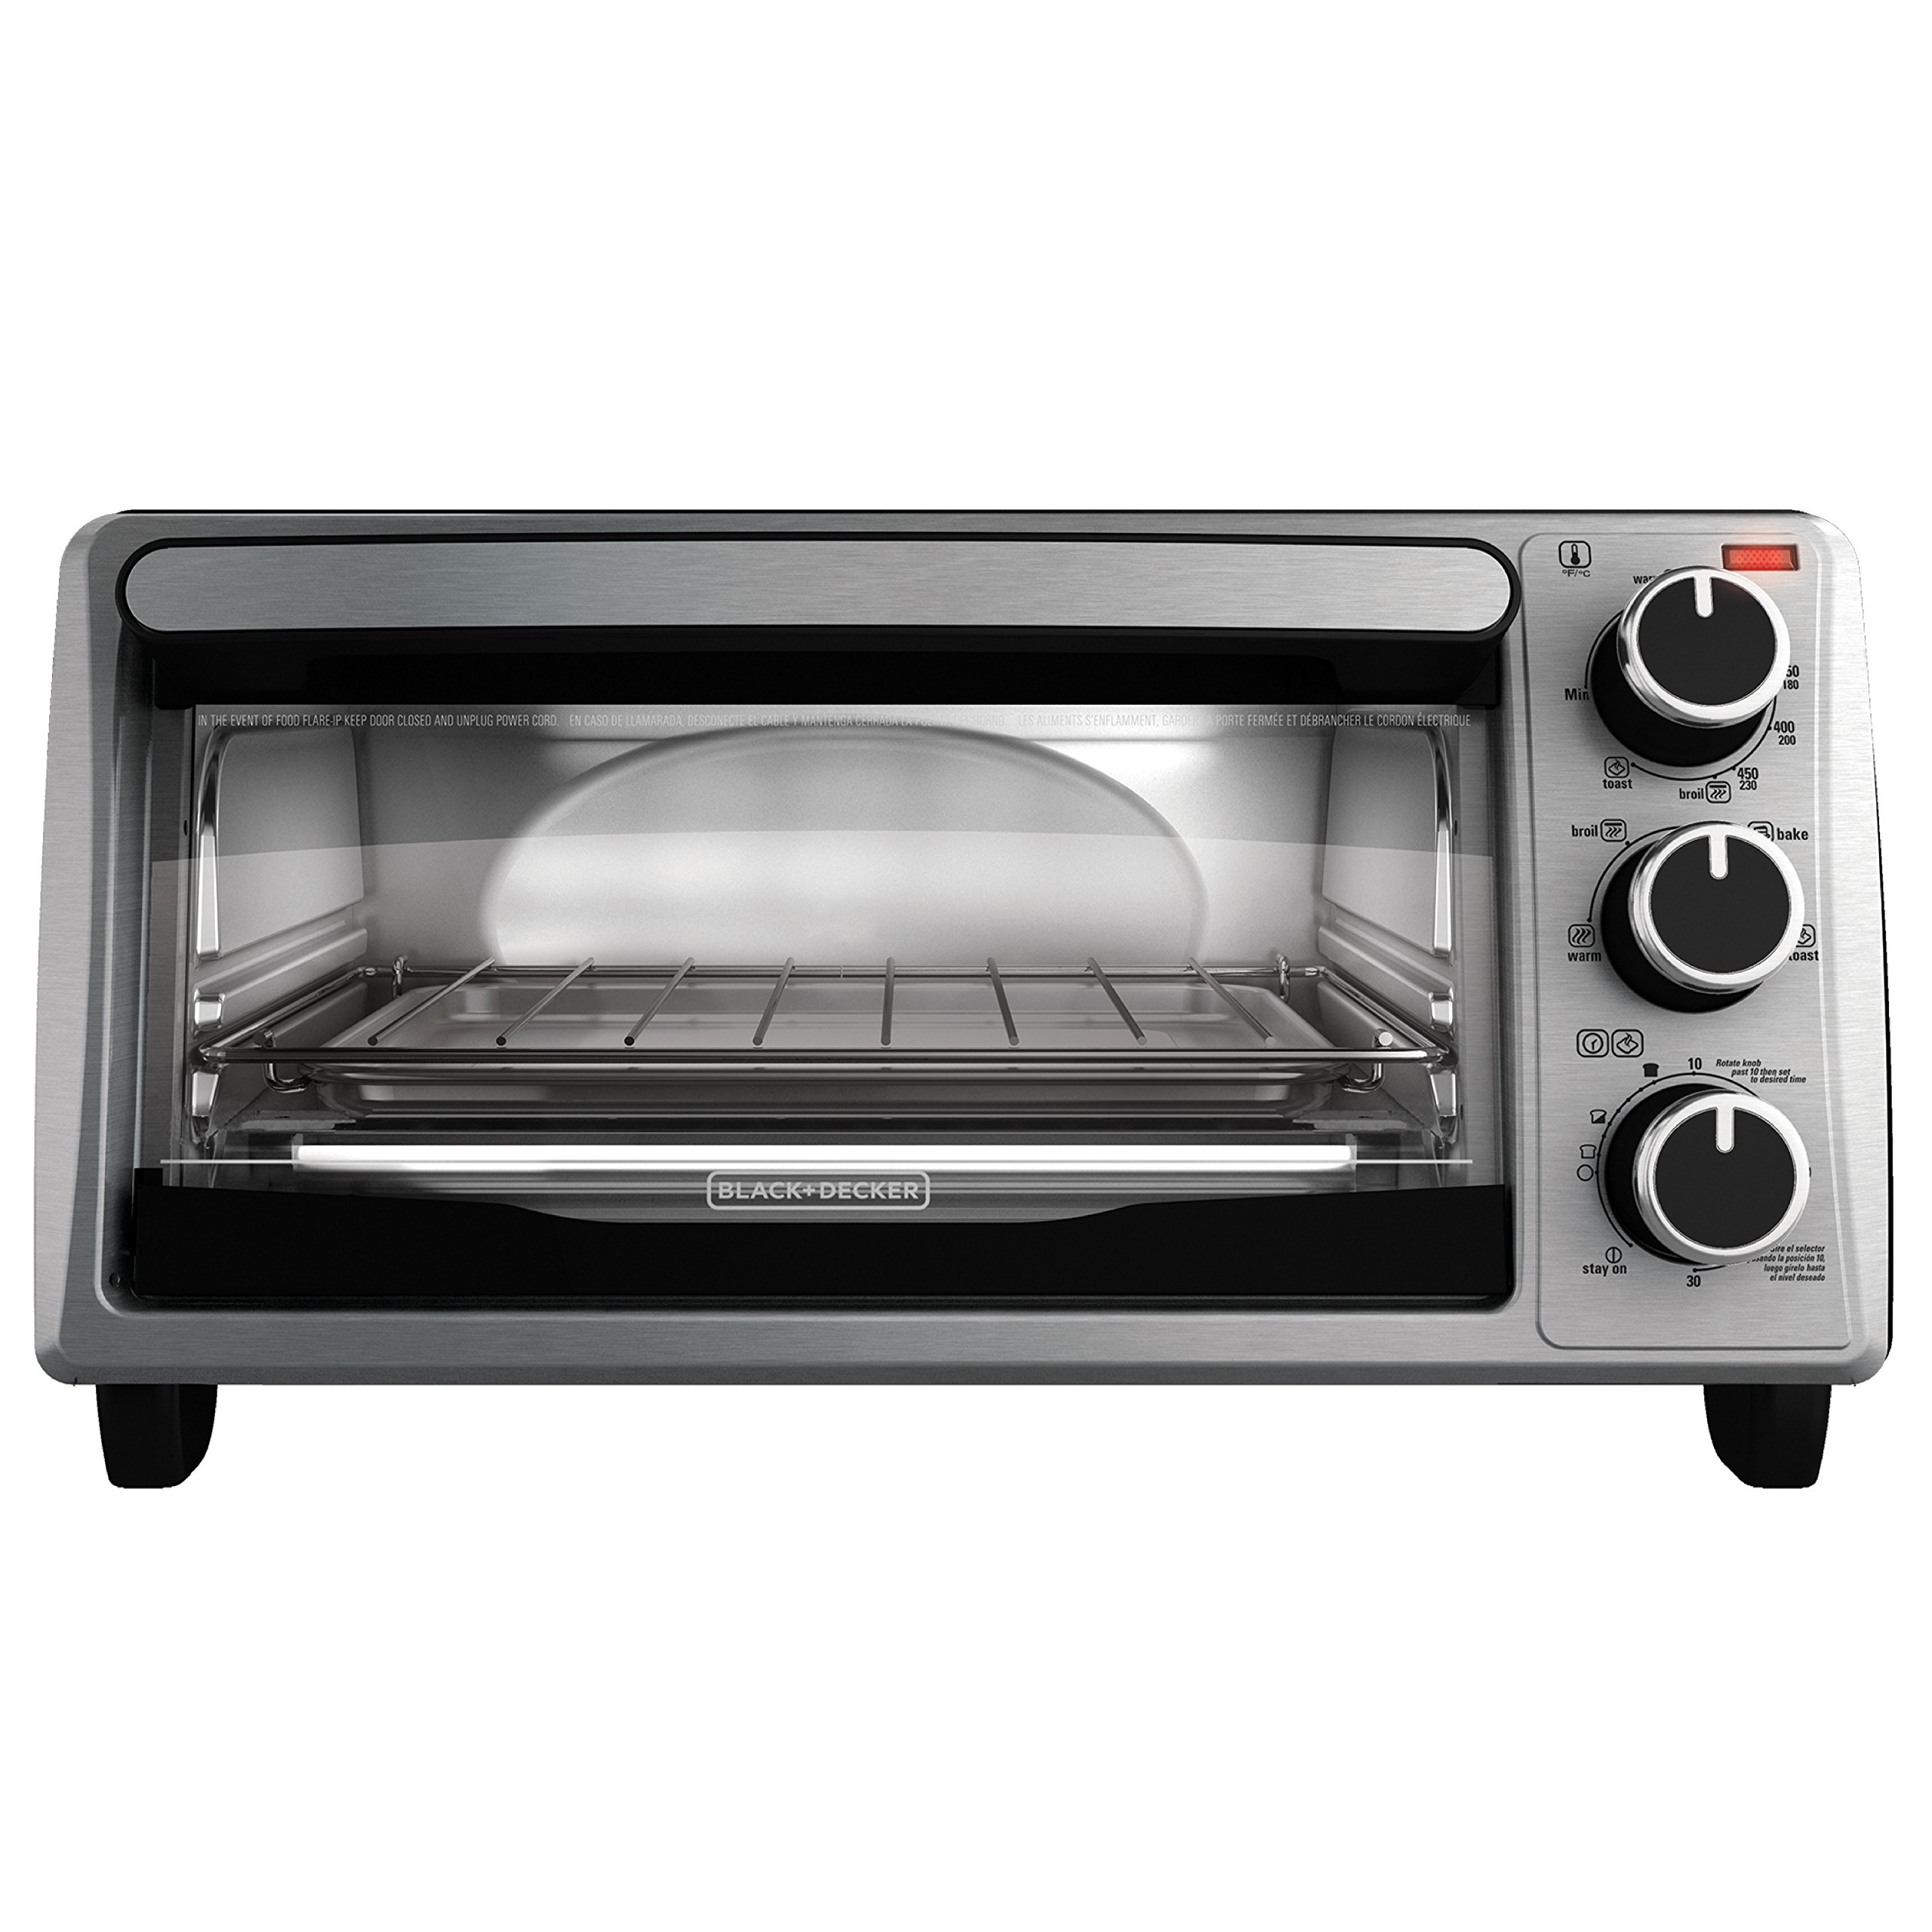 BLACK+DECKER 4-Slice Toaster Oven, Stainless Steel, TO1303SB, 14.5 x 8.8 x 10.8 inches ; 7.5 pounds, Black by BLACK+DECKER